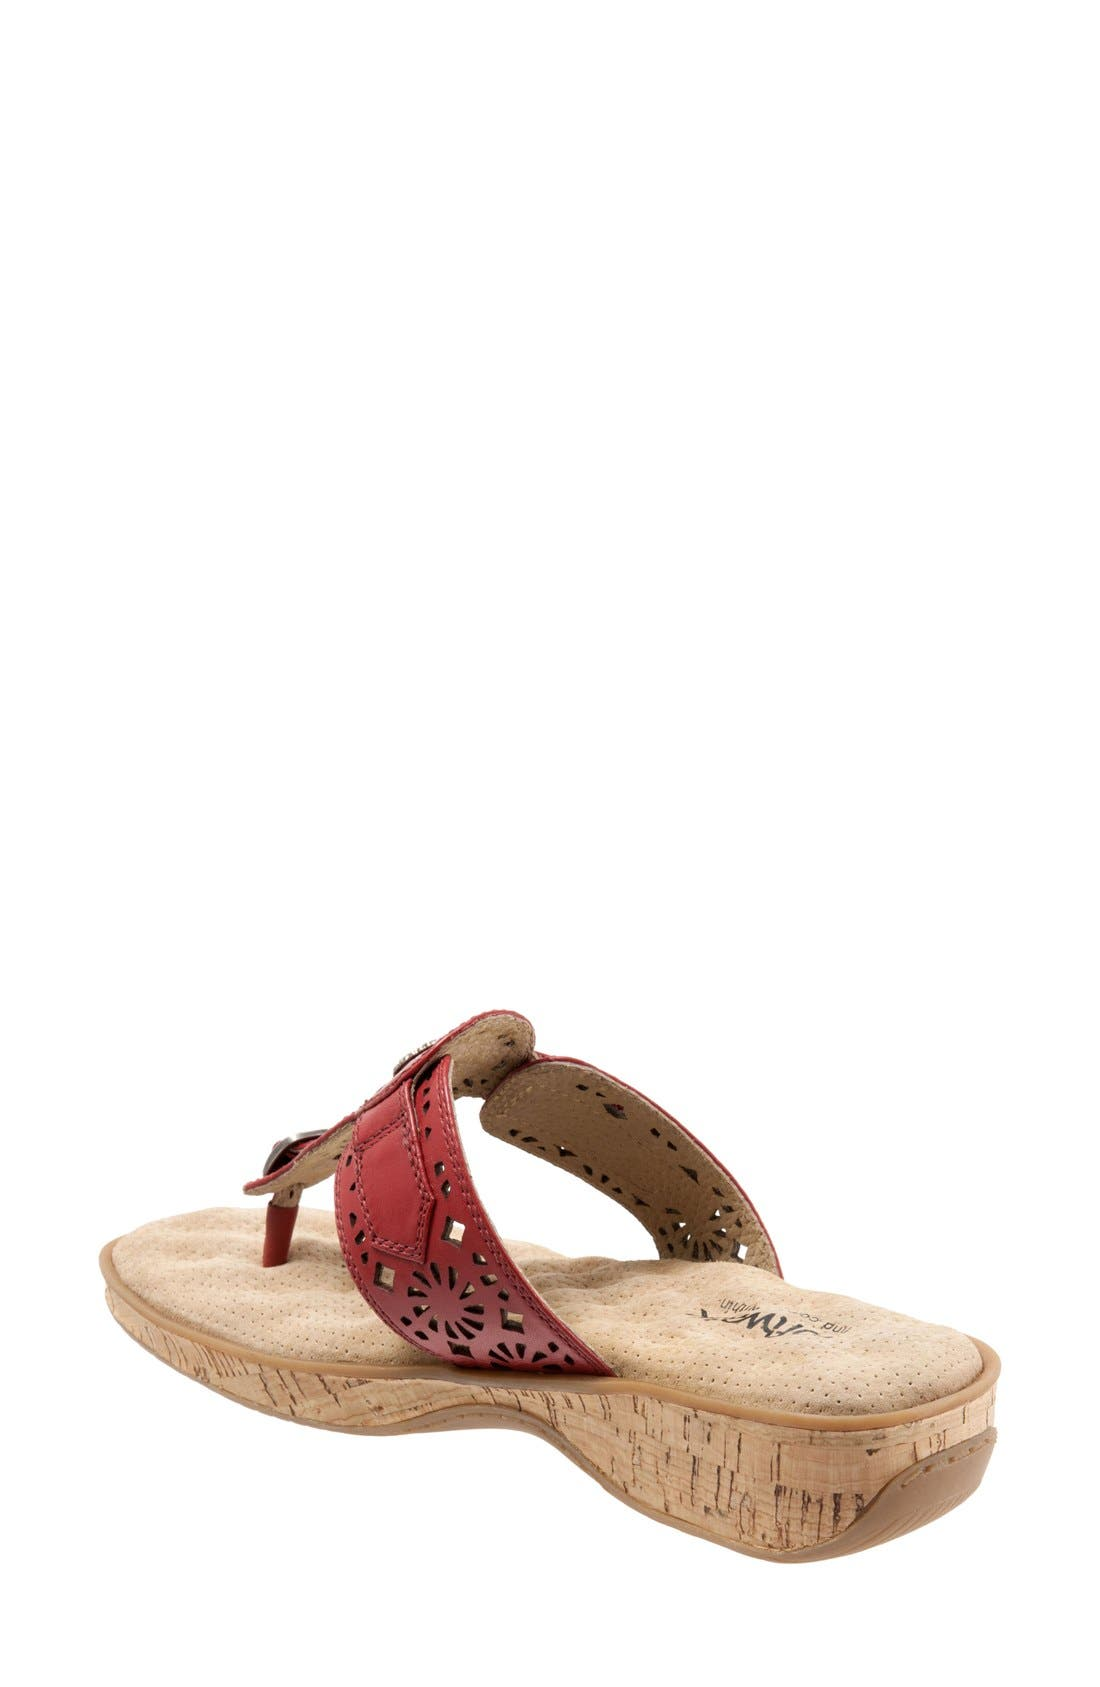 'Beaumont' Sandal,                             Alternate thumbnail 23, color,